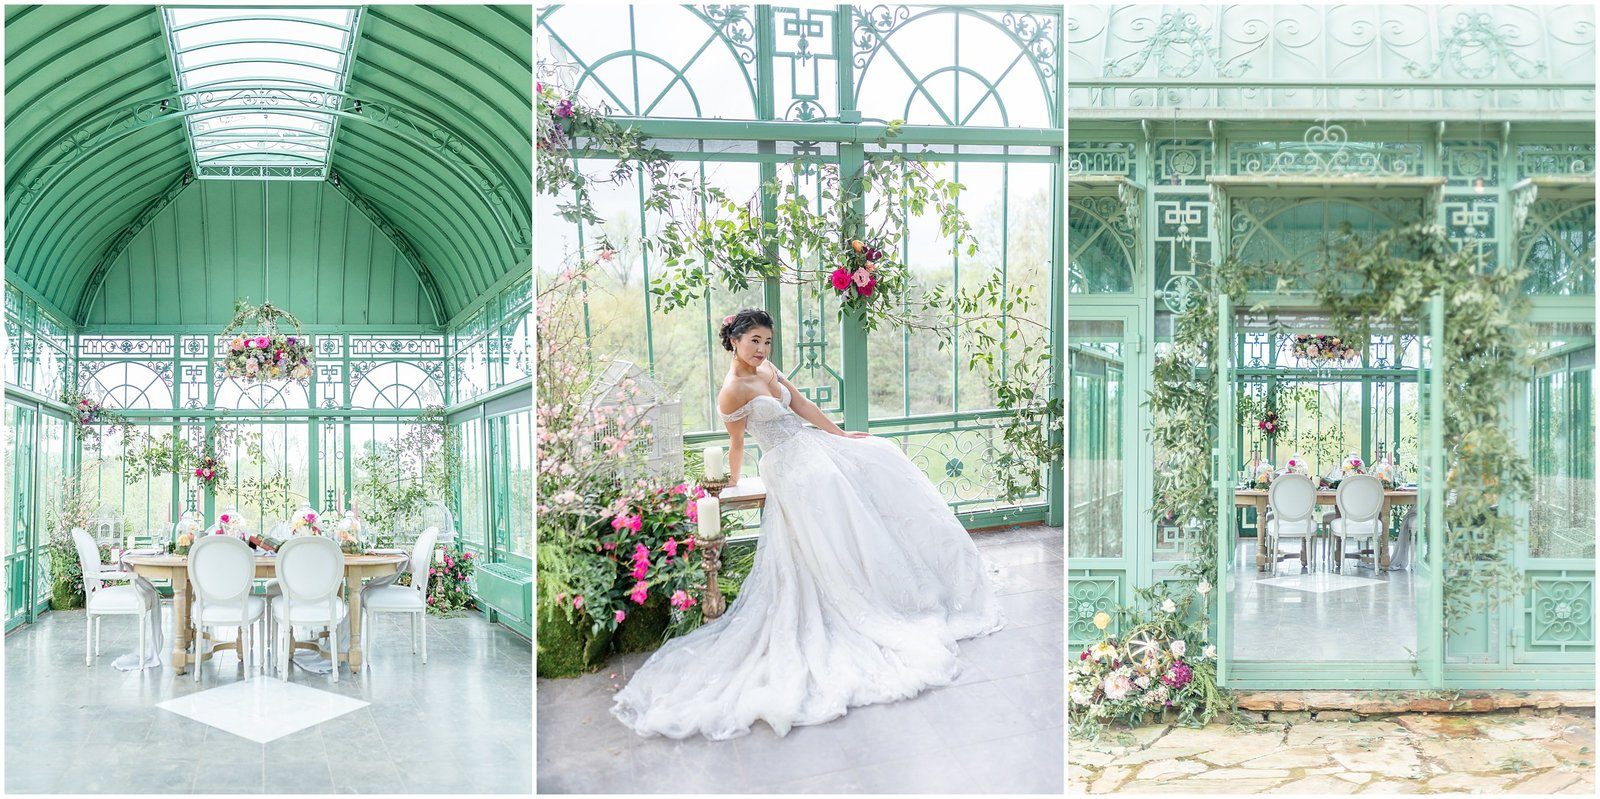 Dreamy Wedding Photography with a modern twist in Indianapolis